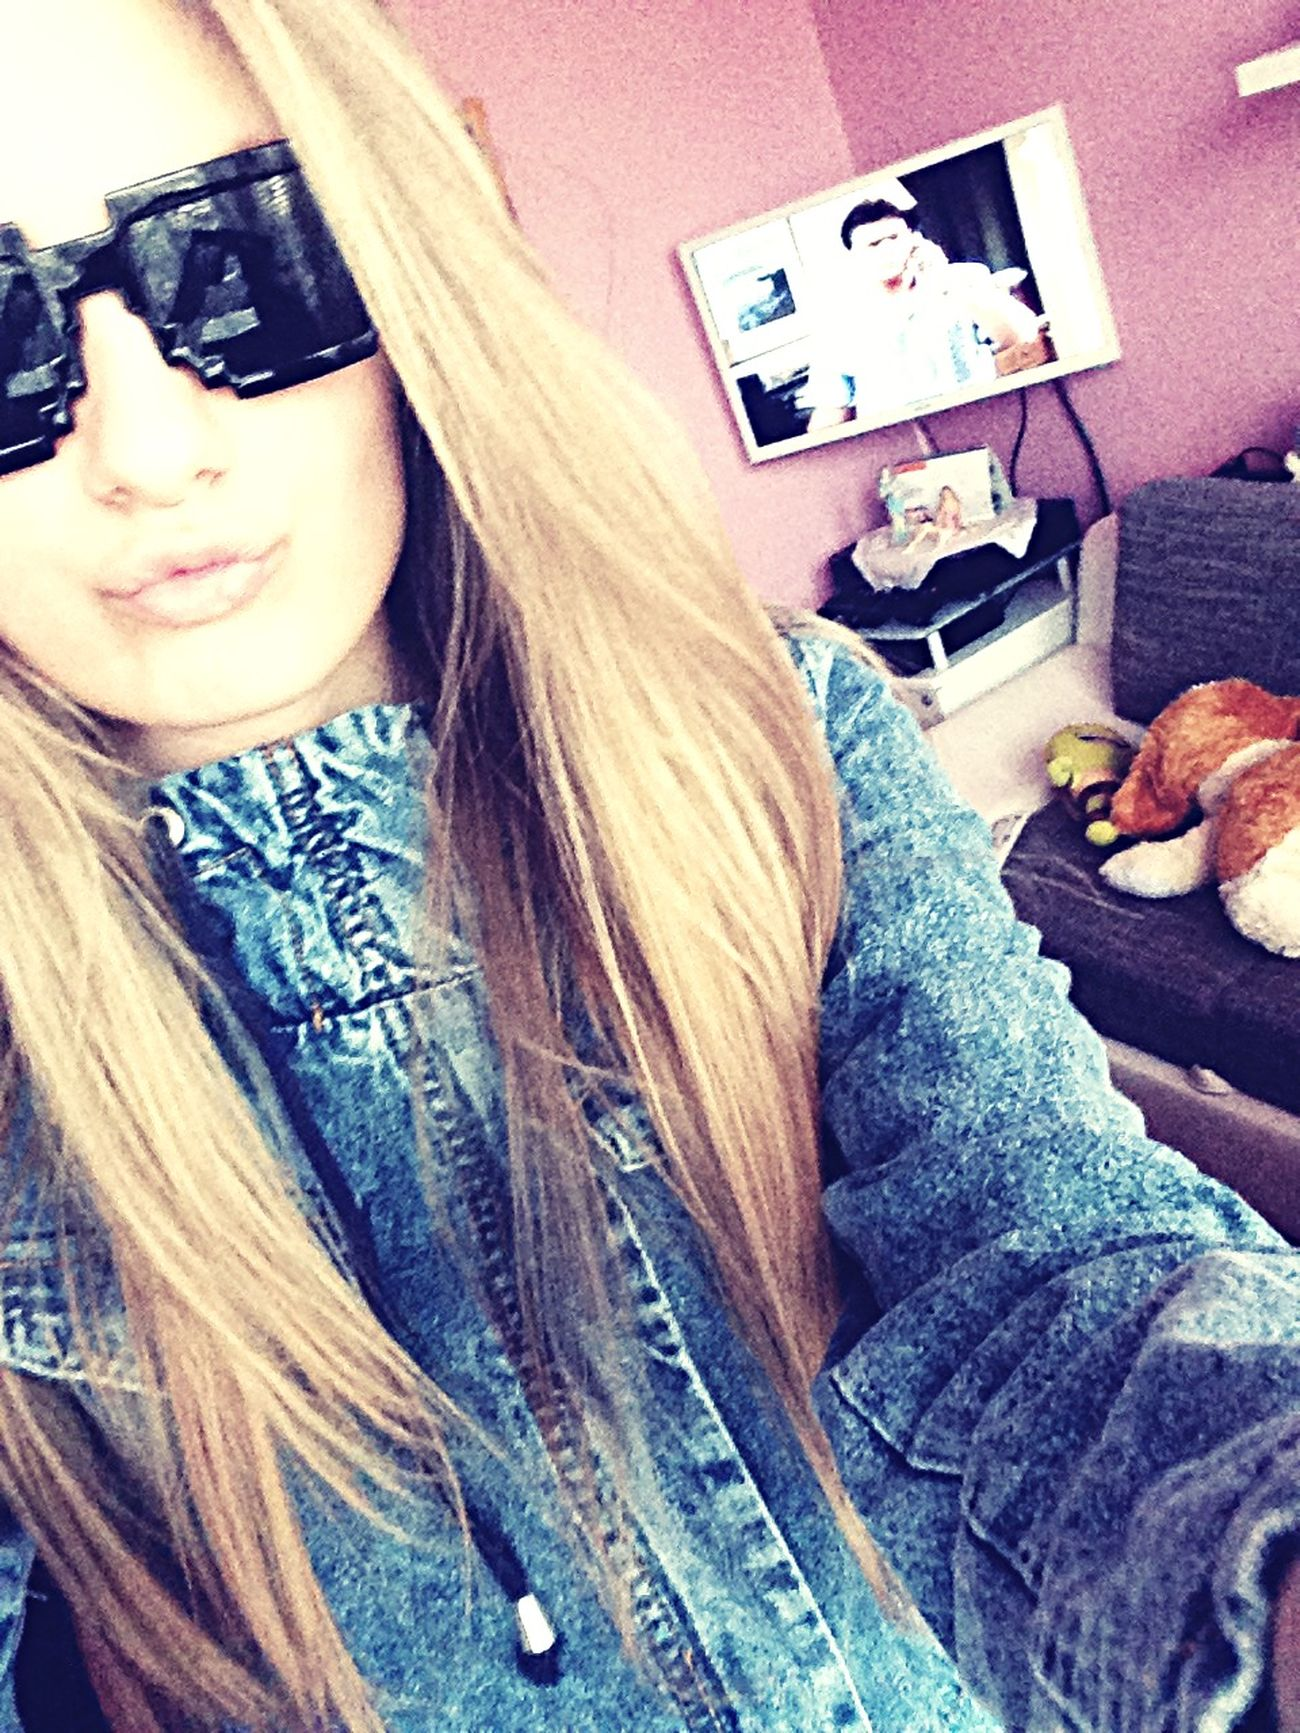 LOL Nehehe Love ♥ Happiness♥ Daydreams♡ Minecraft Sunglasses New Dani Blake  💚